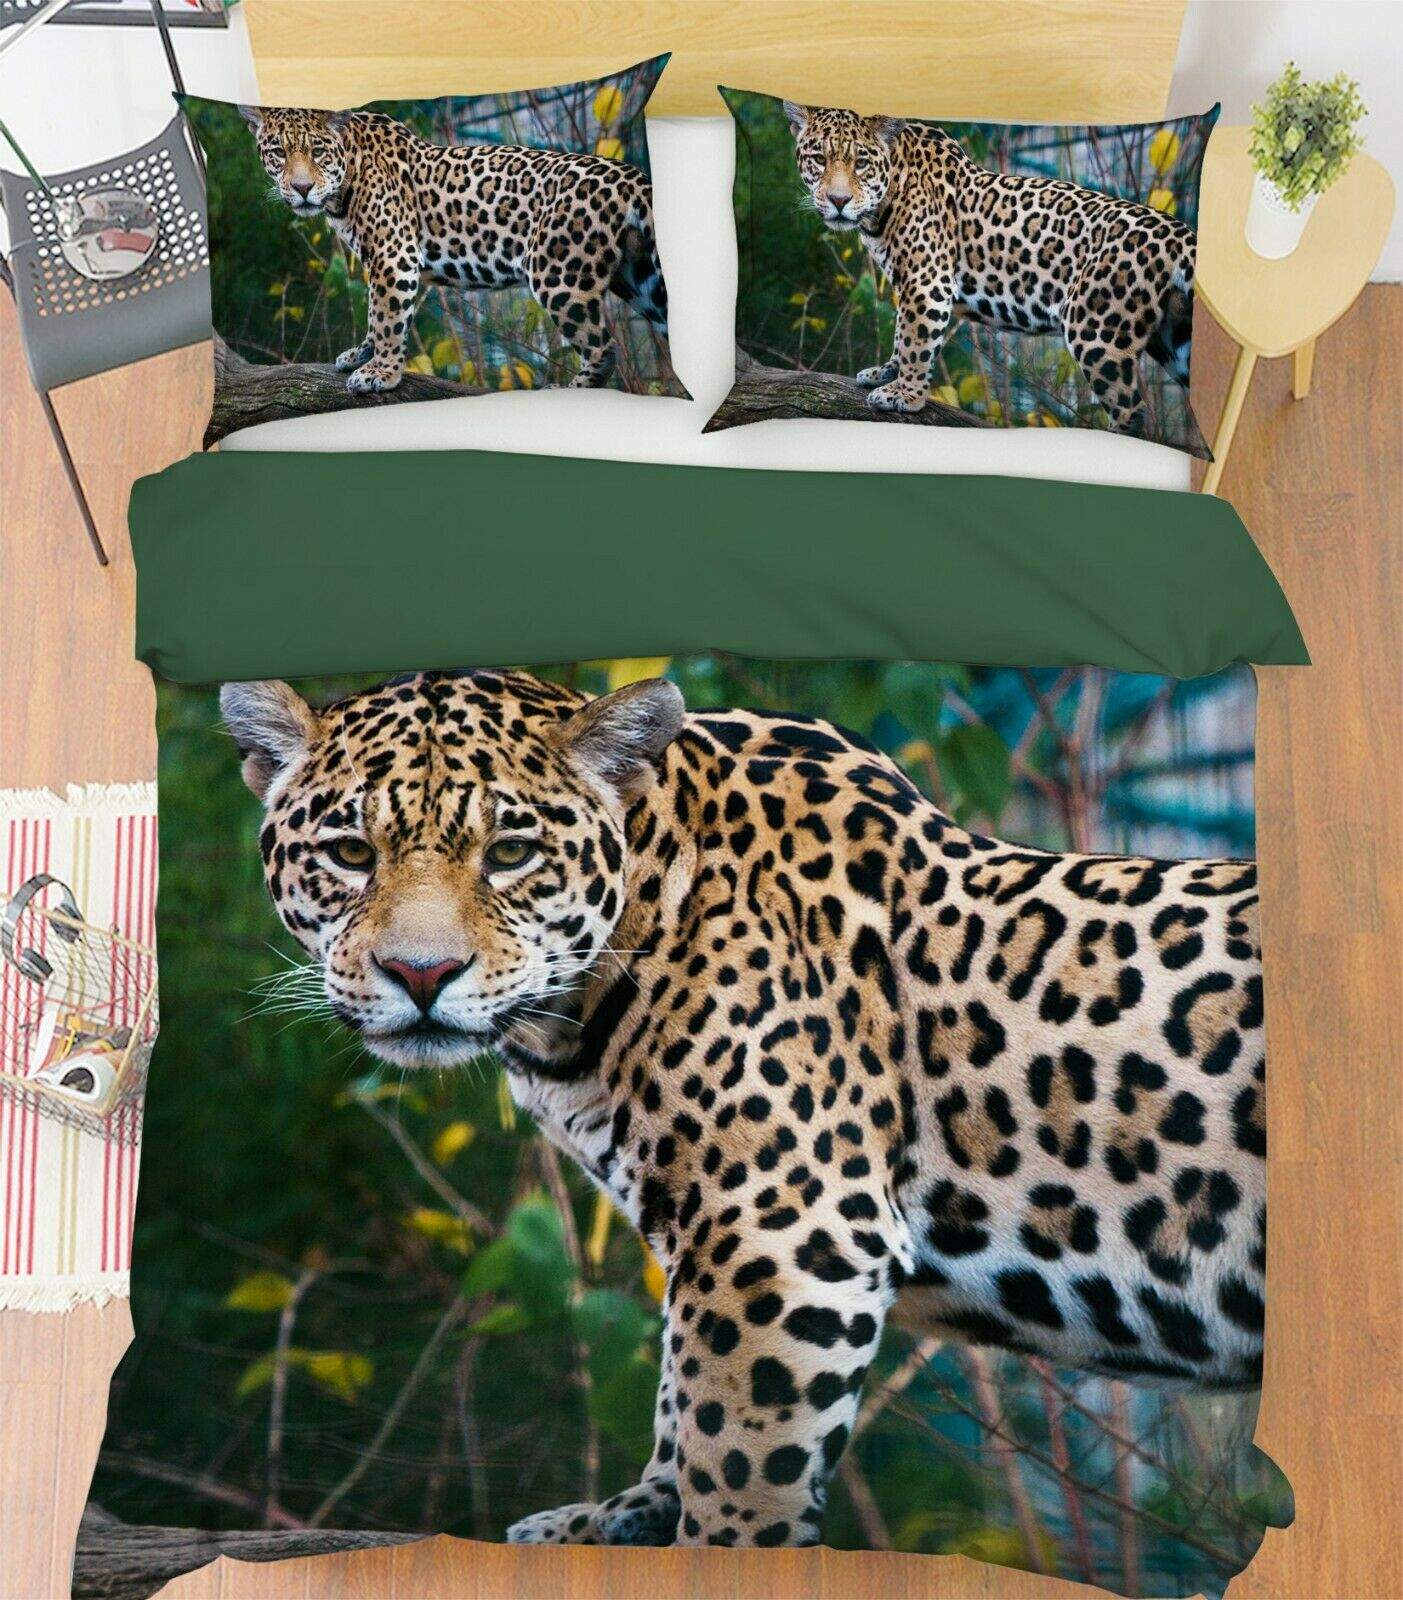 3D Leopard I62 Animal Bed Pillowcases Quilt Duvet Cover Queen King Angelia